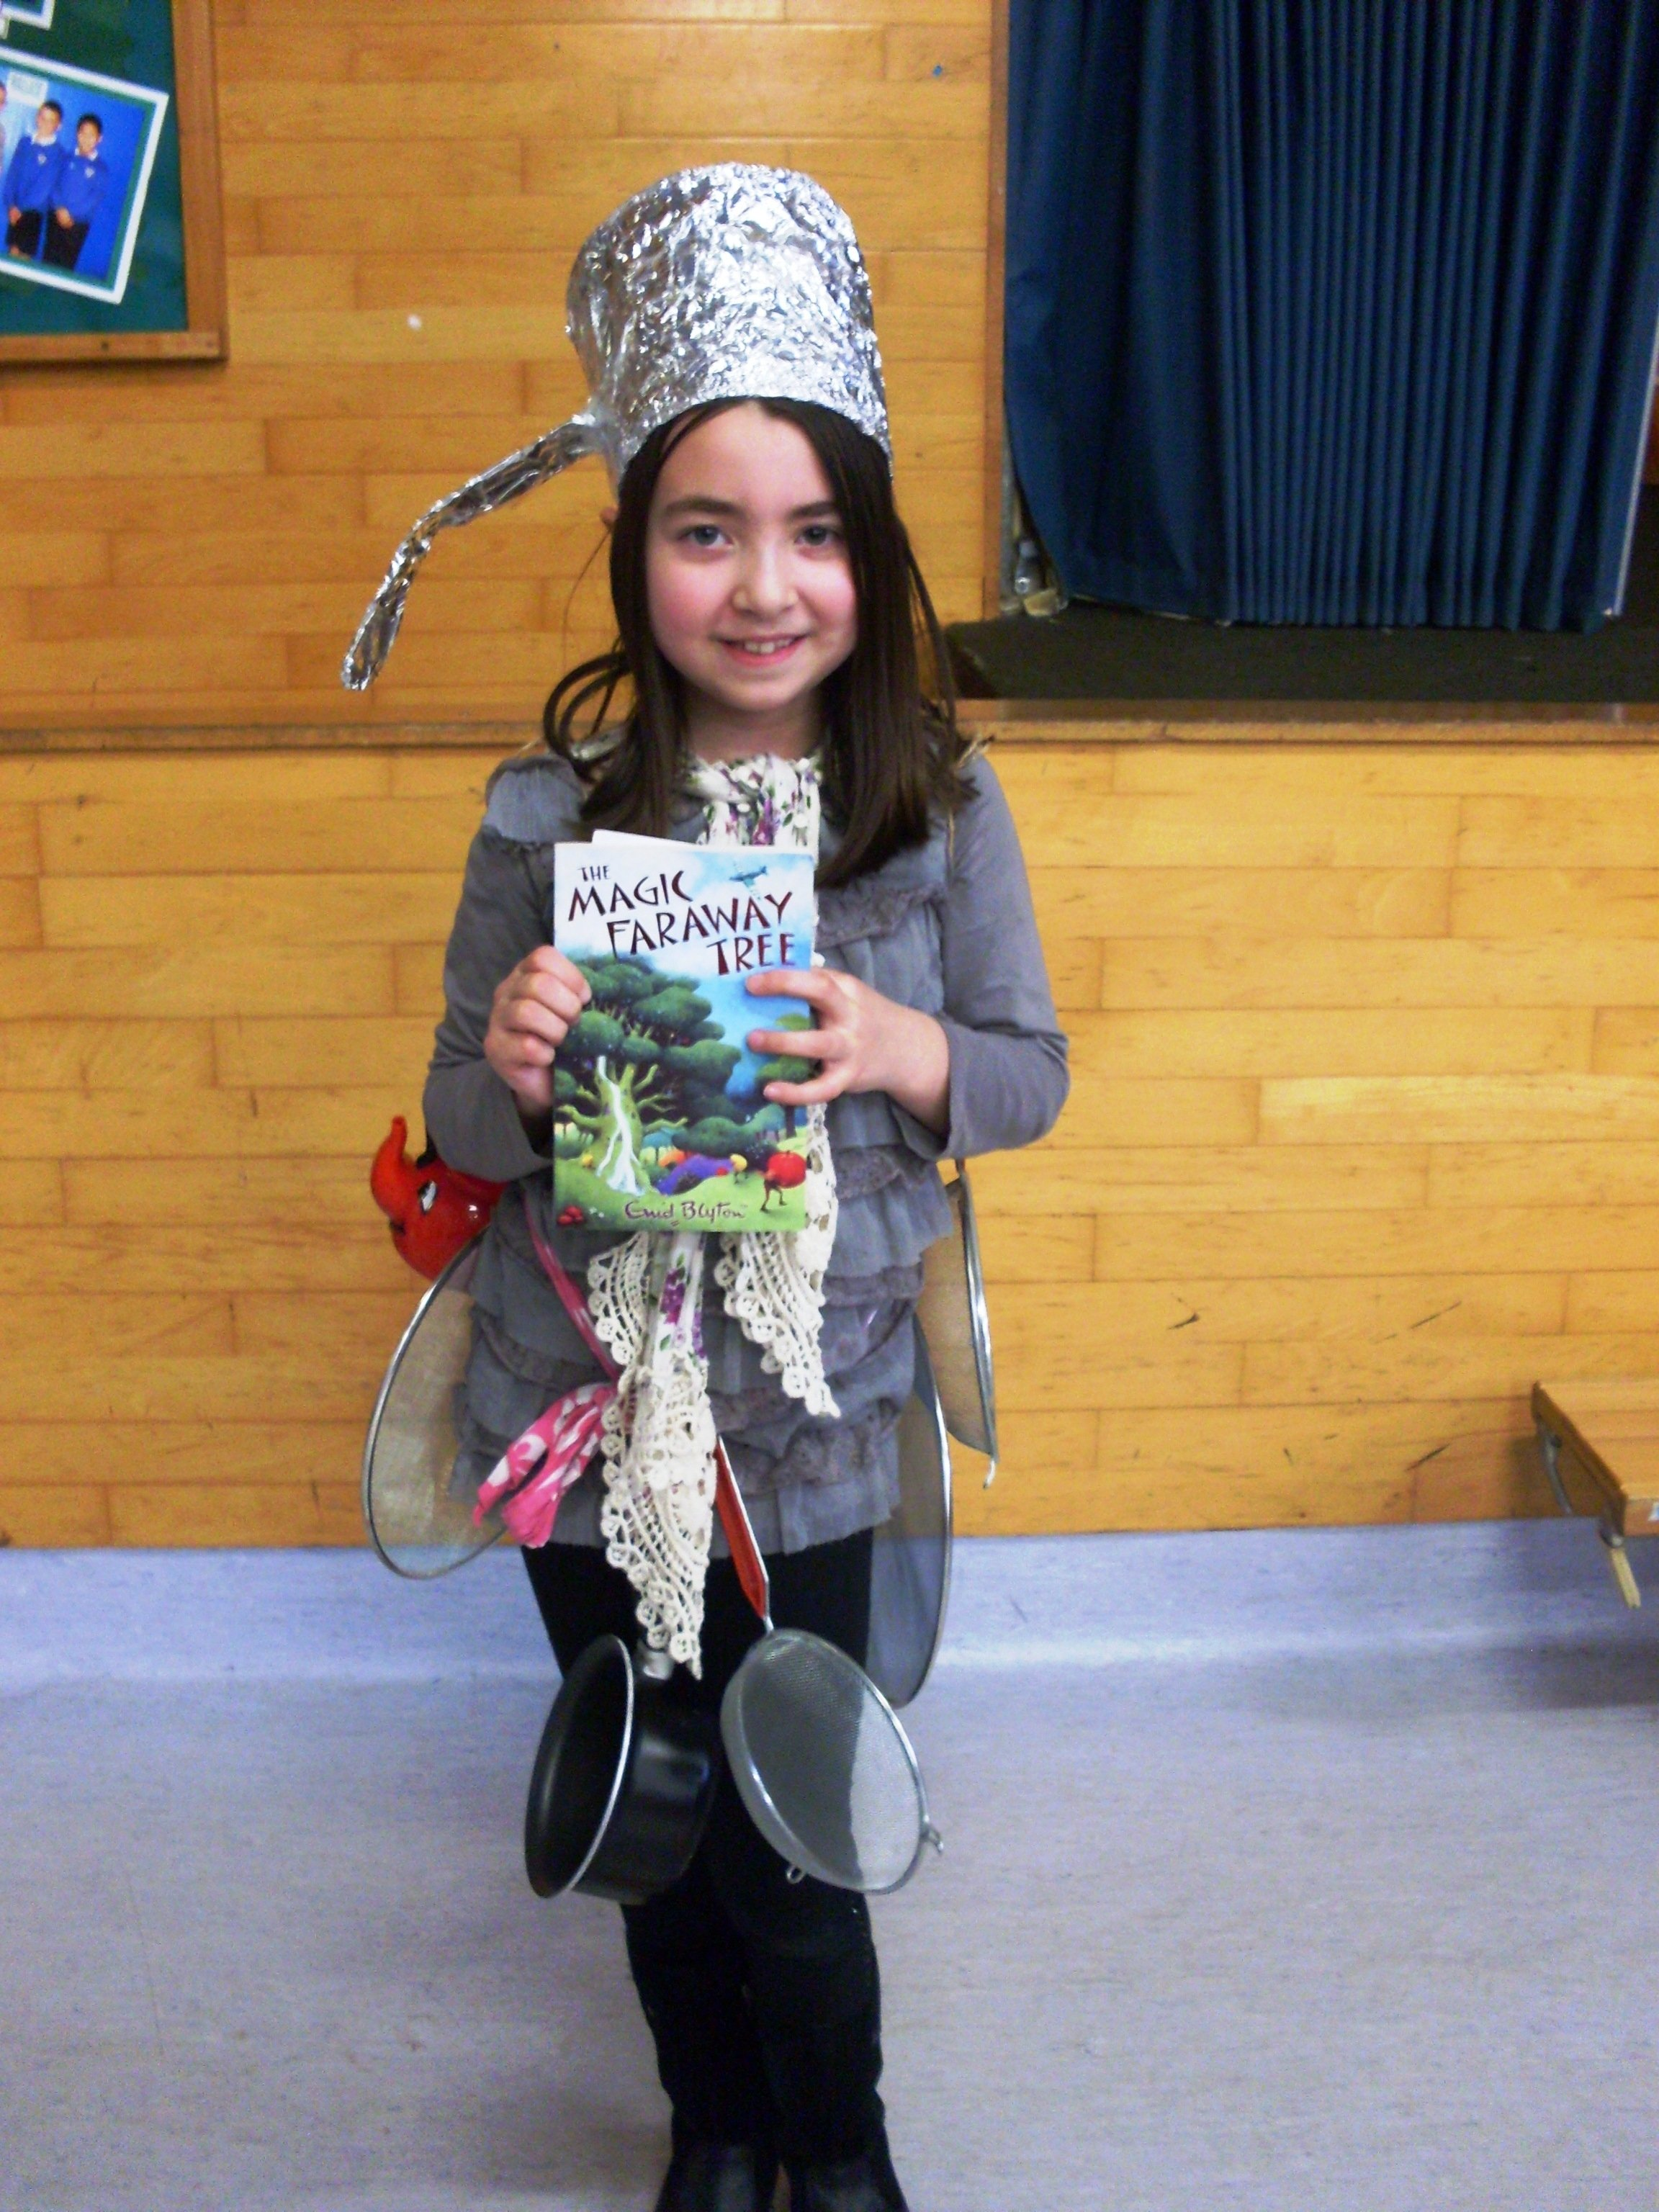 10 Cute Character Day Ideas For Girls pincindy colson on dress up as your favourite book character 1 2020